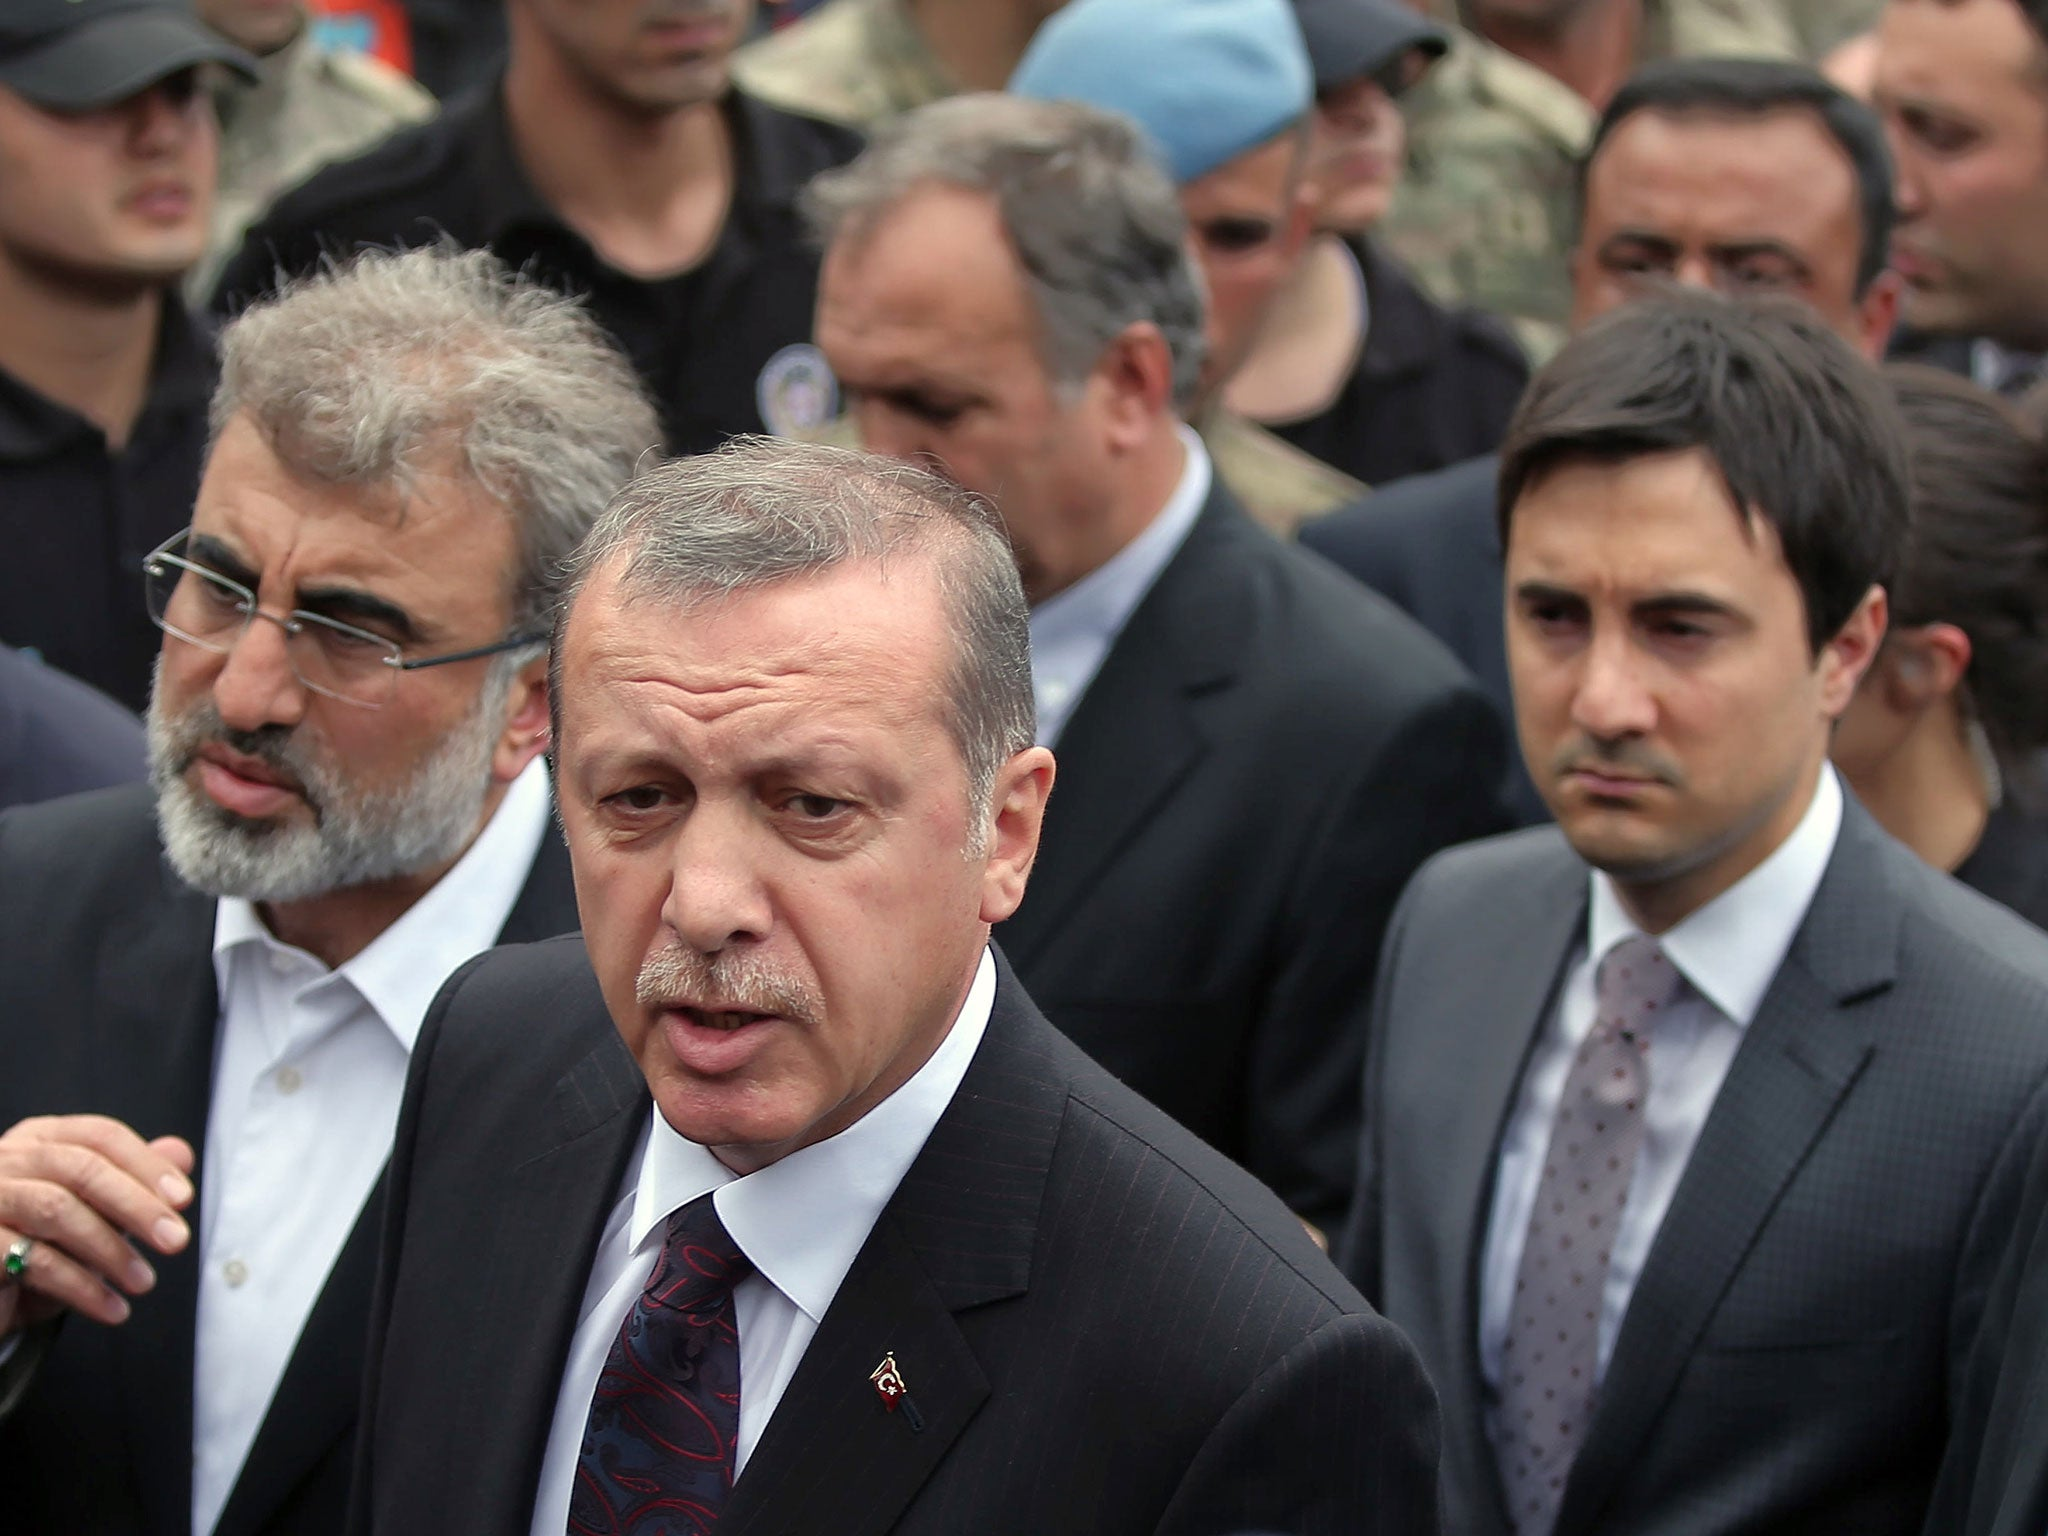 Turkey coal mine explosion: Turkish PM accused of 'slapping protester' |  The Independent | The Independent